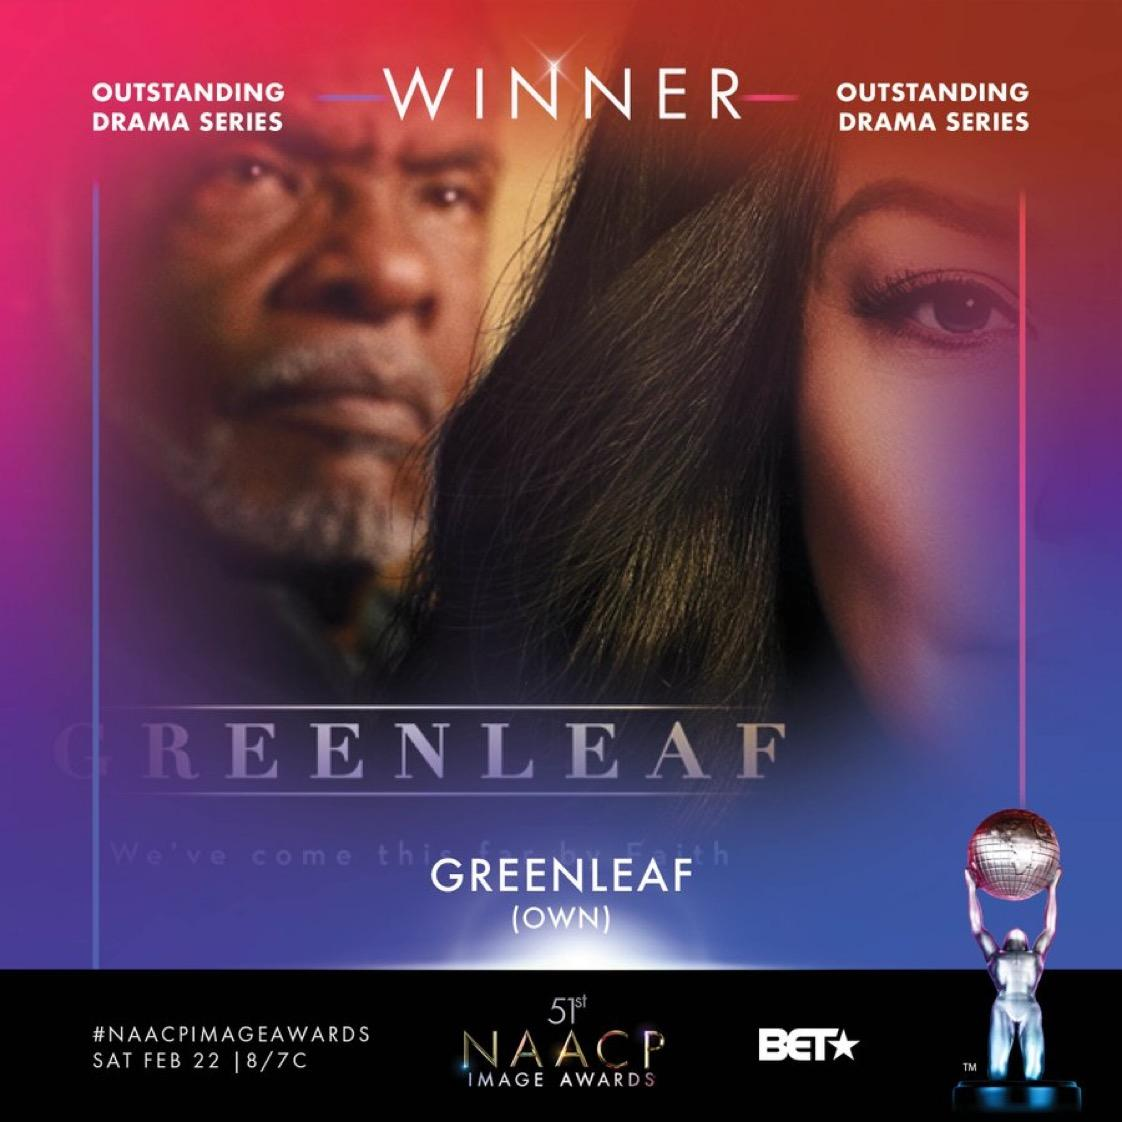 NAACP Image Award Winner Greenleaf